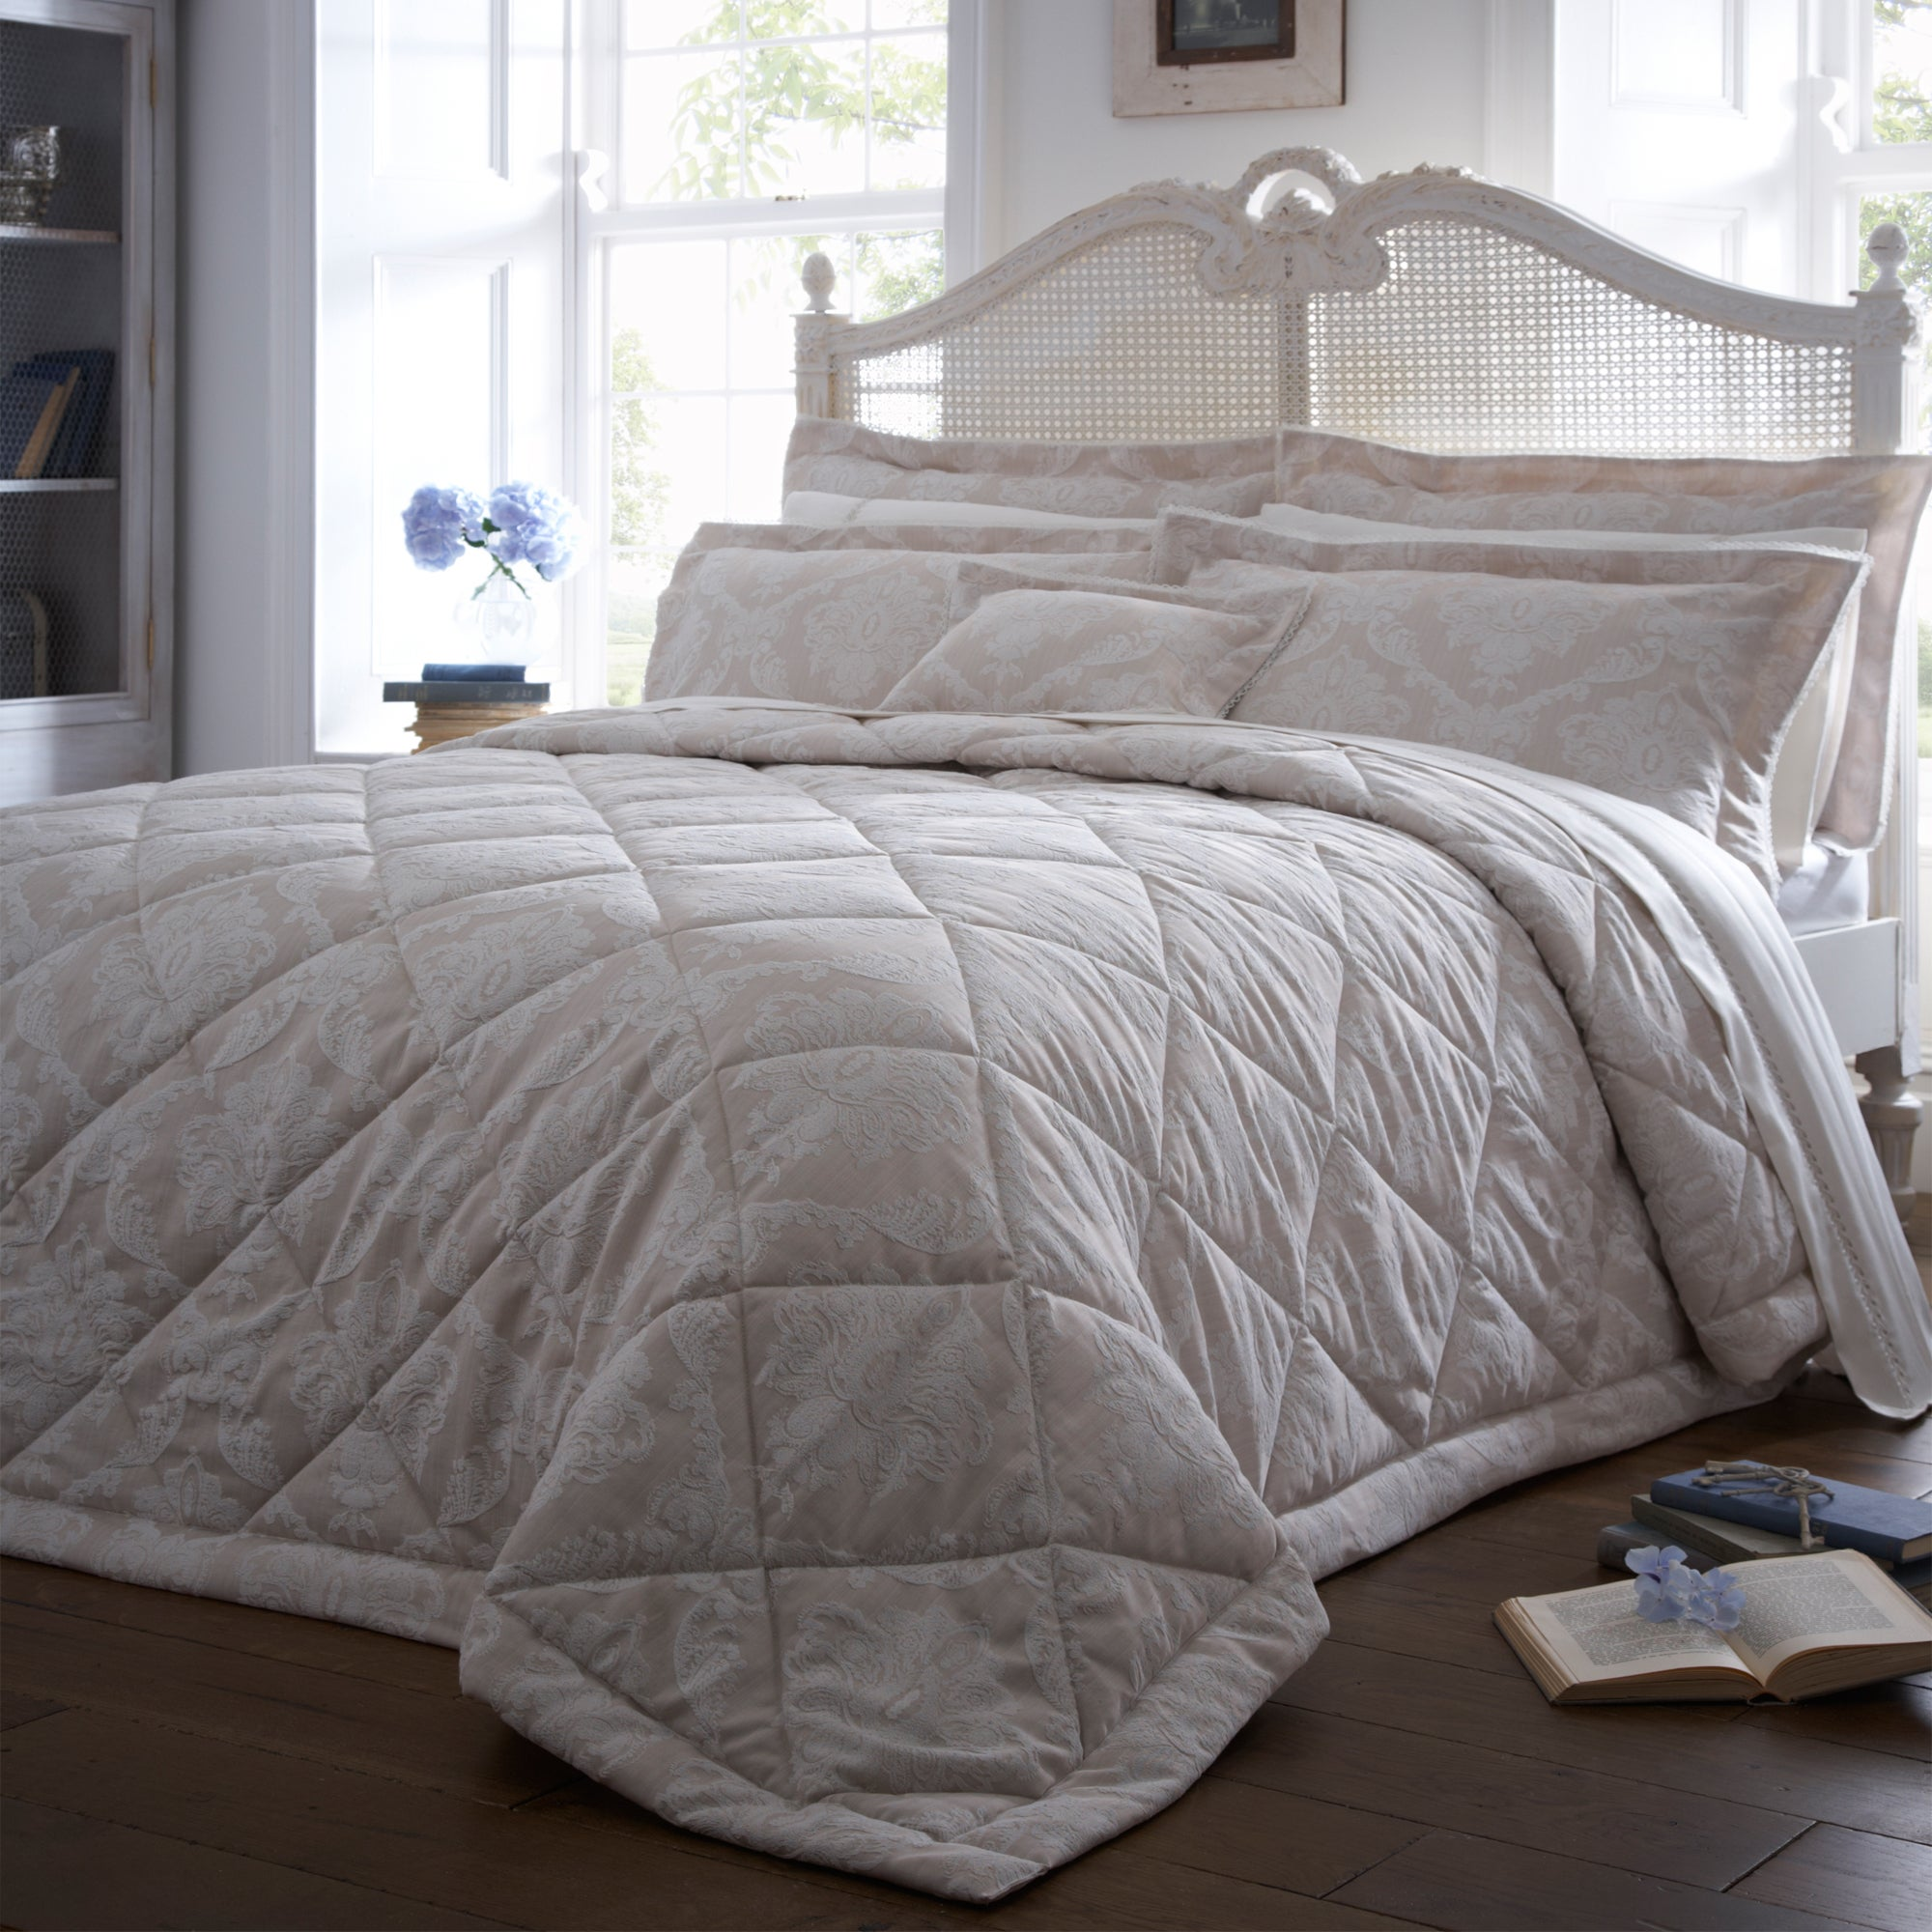 dorma natural aveline collection quilted throw dunelm. Black Bedroom Furniture Sets. Home Design Ideas